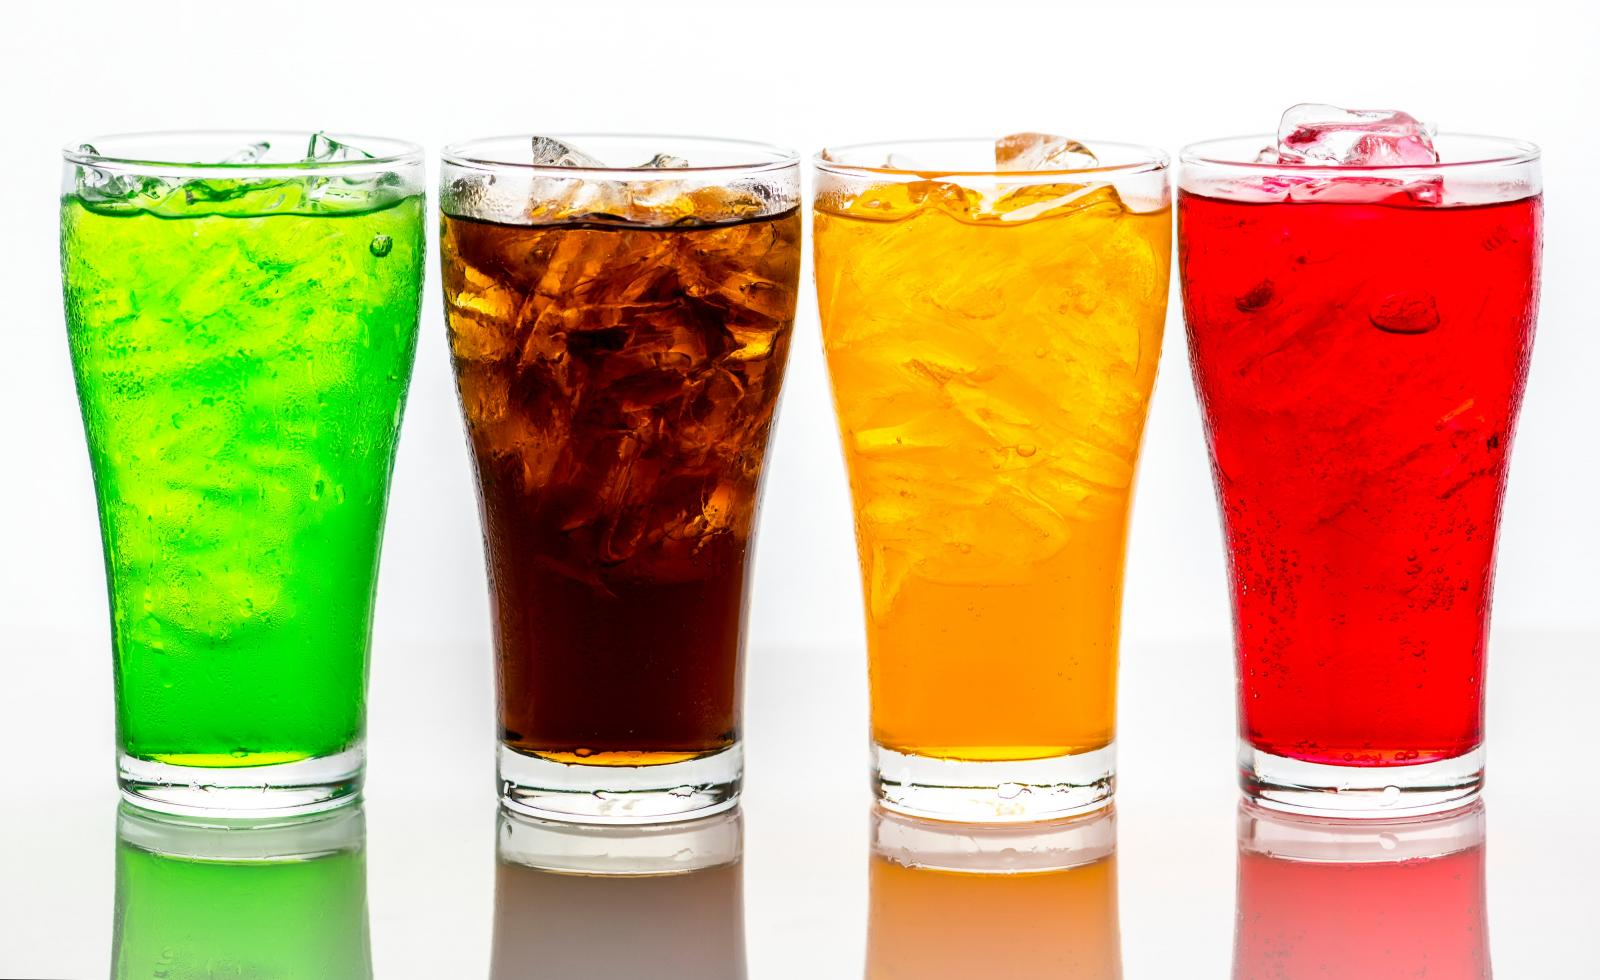 Assorted fizzy drinks. Photo credit: Pexels